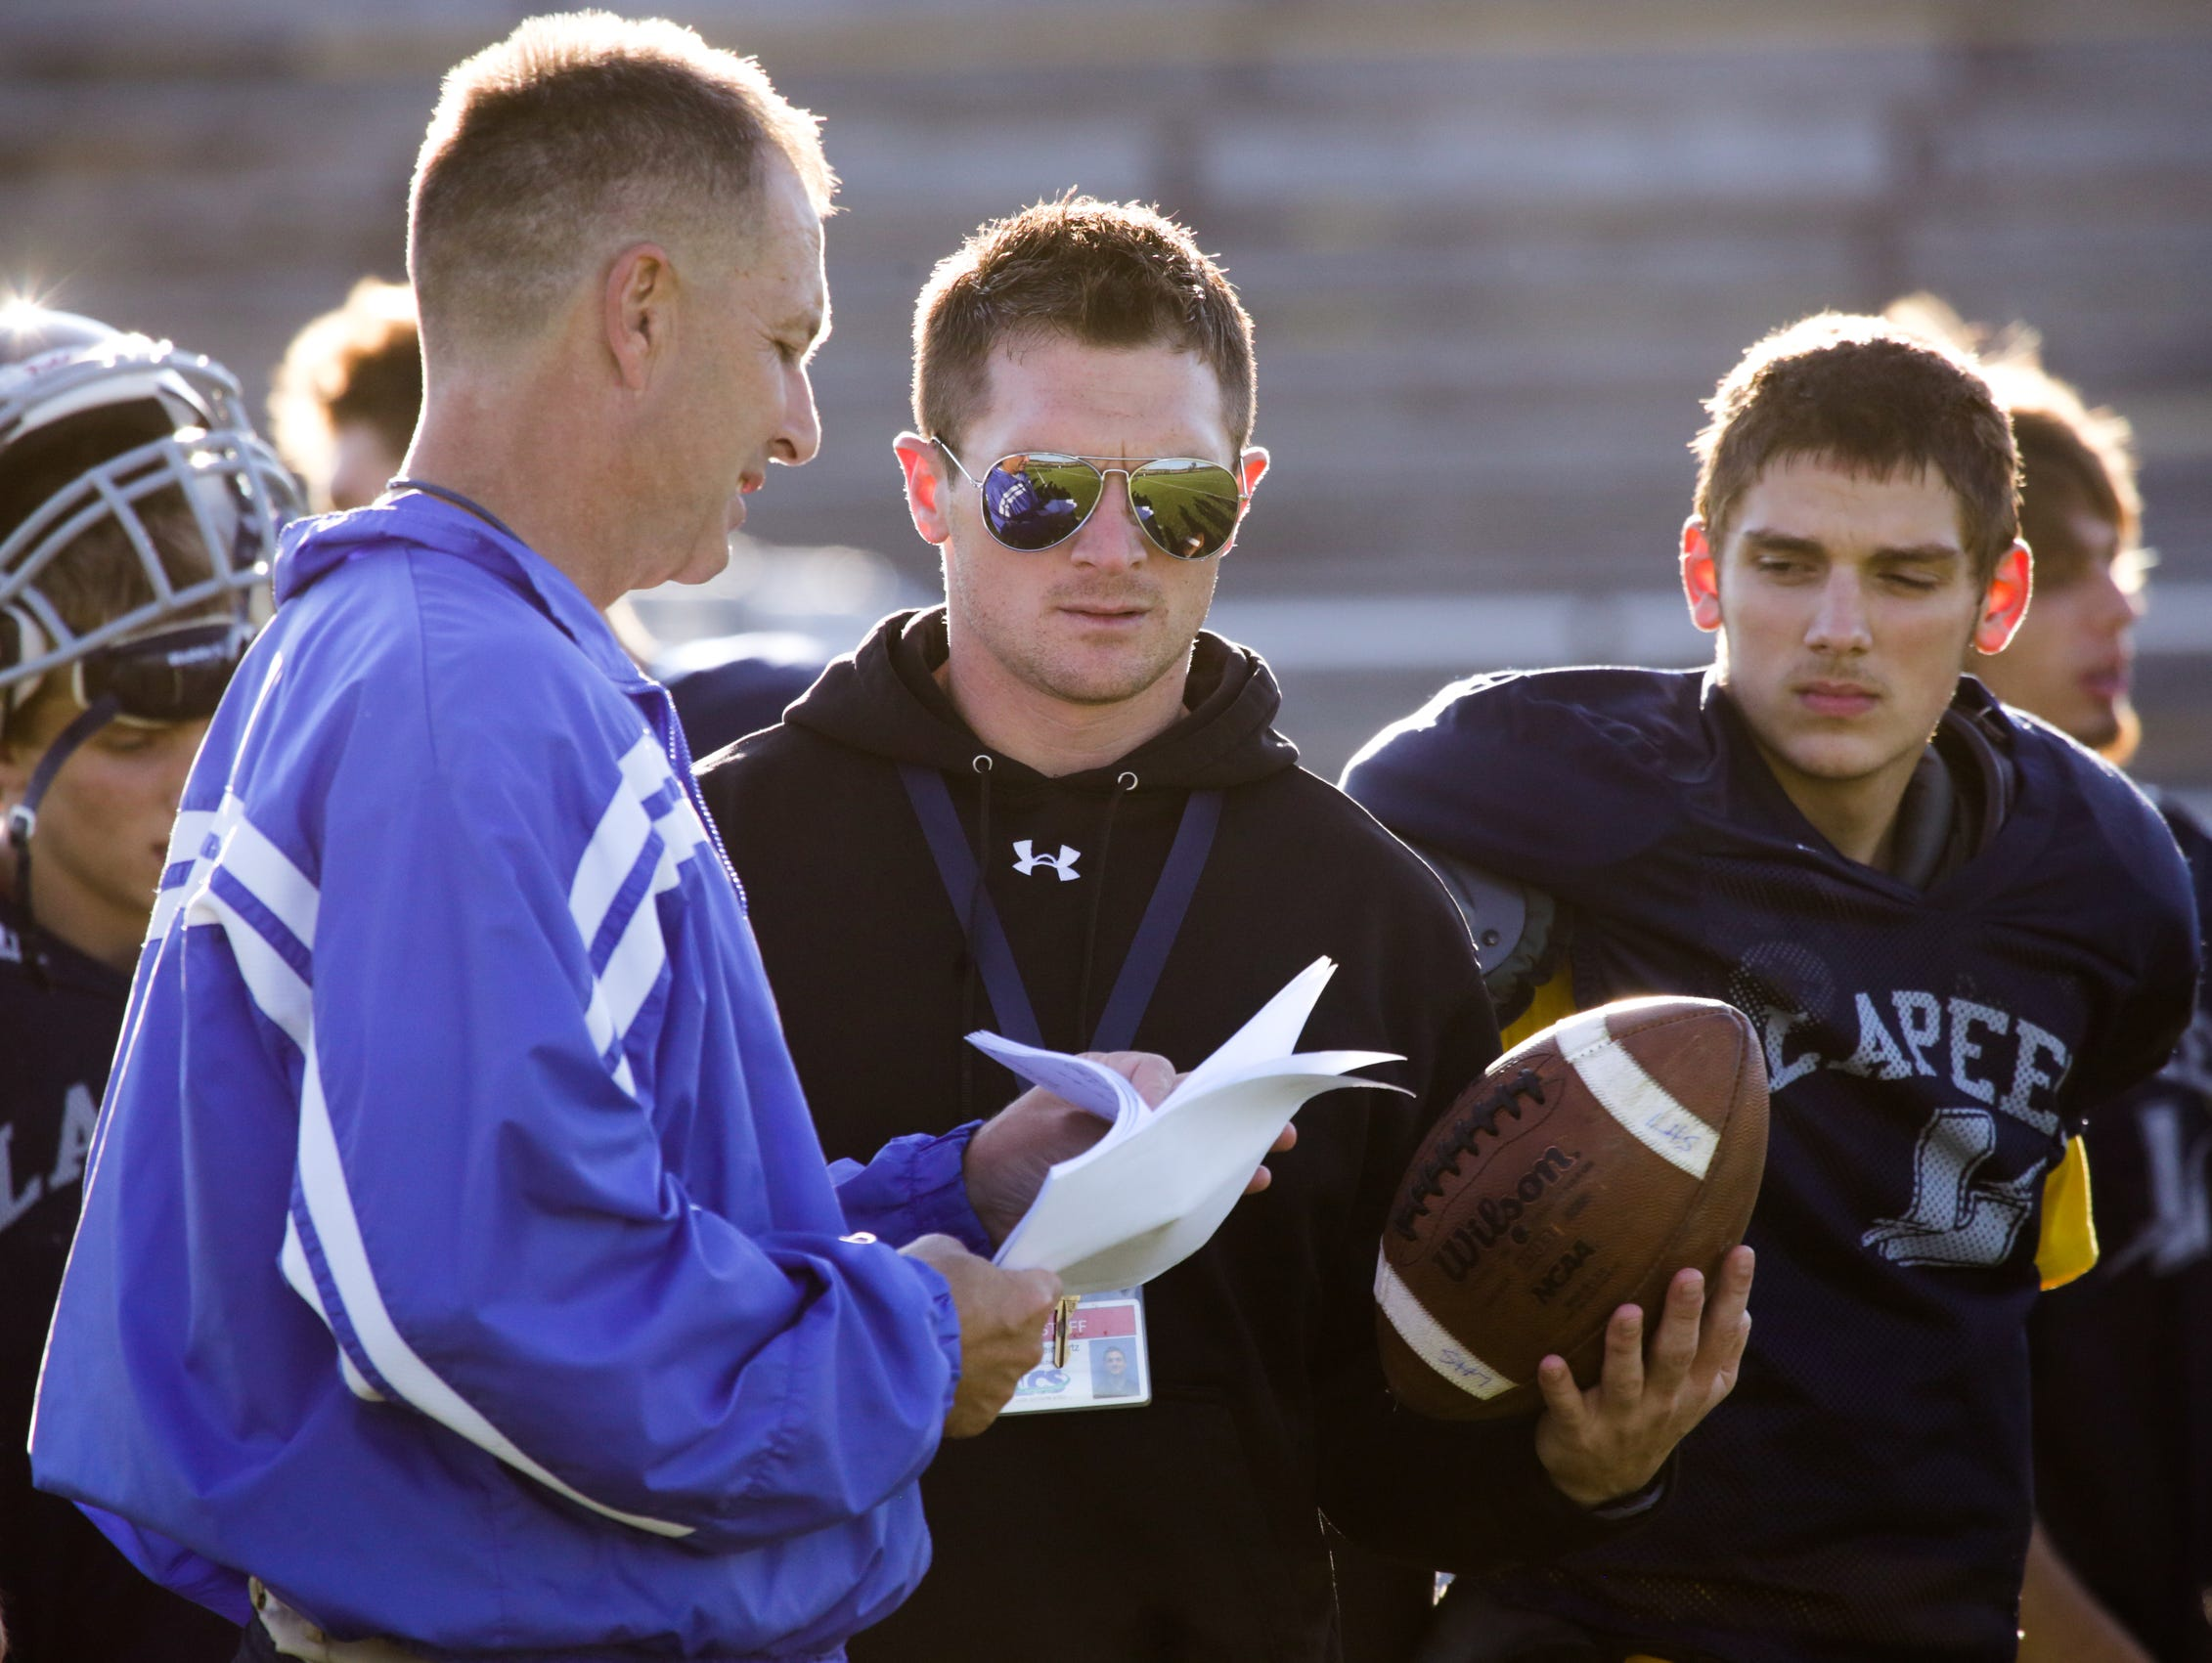 Lapeer High School head football coach Mike Smith (left) and offensive coordinator Jake Weingartz (center) discuss plays on Monday September 22, 2014 during varsity football practice at Lapeer High School in Lapeer, MI . This is the first year for Lapeer High School after Lapeer West and East merged. The blended team is off to a 3-0 start. Mike Smith, who was West's coach, is the coach and Jake Weingartz, who was East's coach, is the offensive coordinator. Ryan Garza / Detroit Free Press